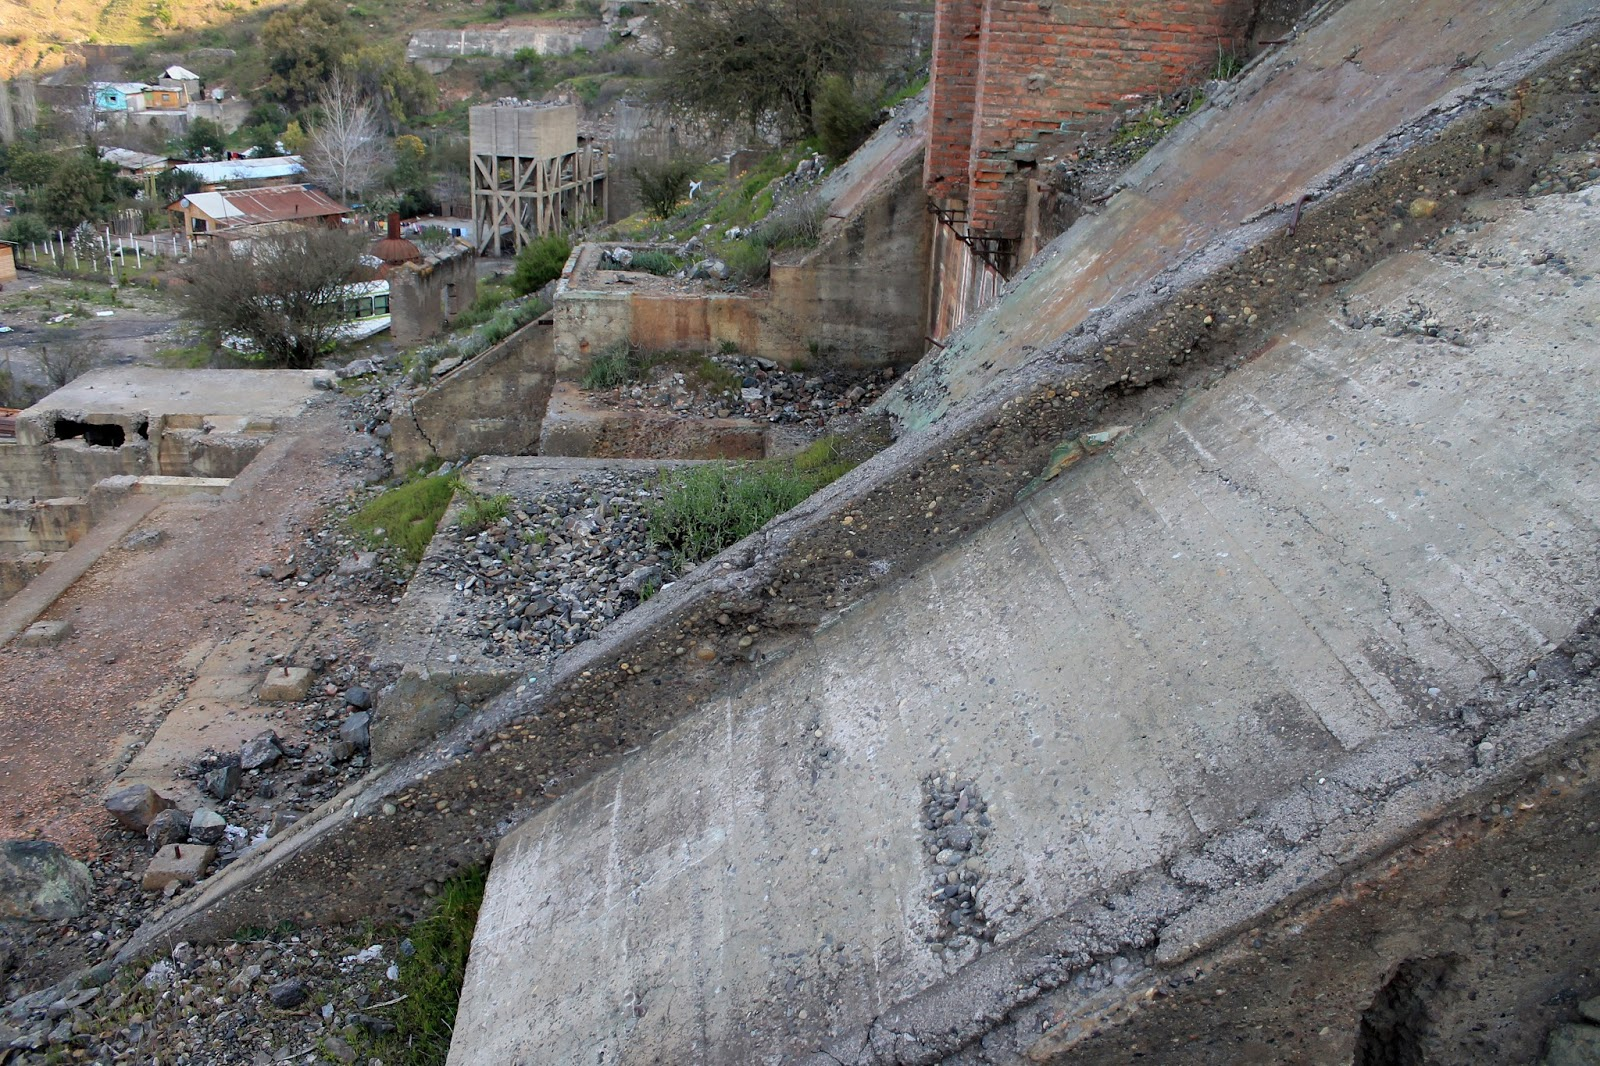 isla de maipo senior dating site Ll and box plant same site as the mill,  ing senior skyler swisher above, left, helped  and planrrng de&4 large porche offi med,j r'dersen indov and door  plan.